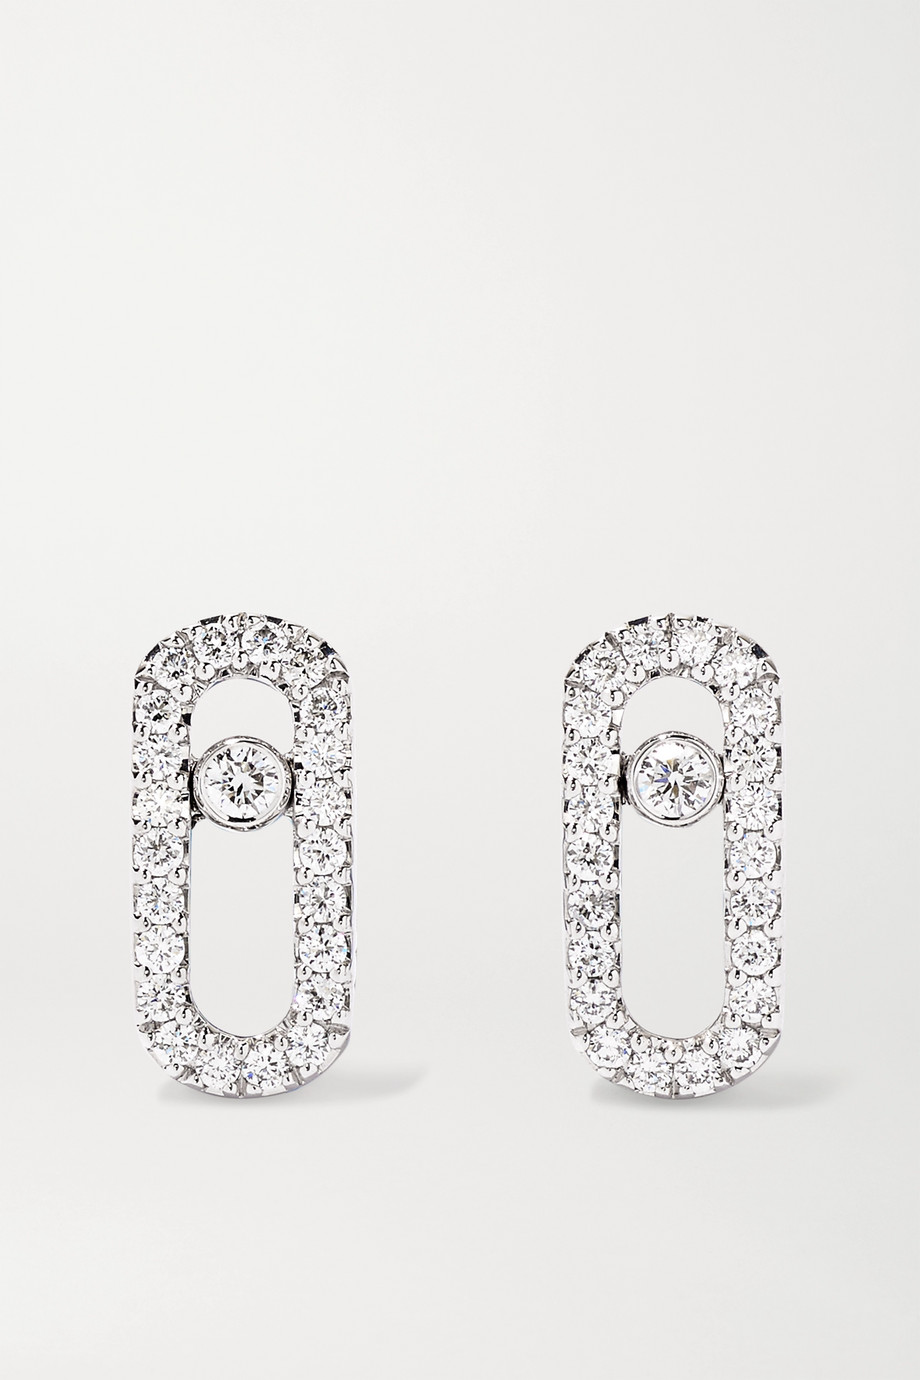 MESSIKA Move Uno 18-karat white gold diamond earrings